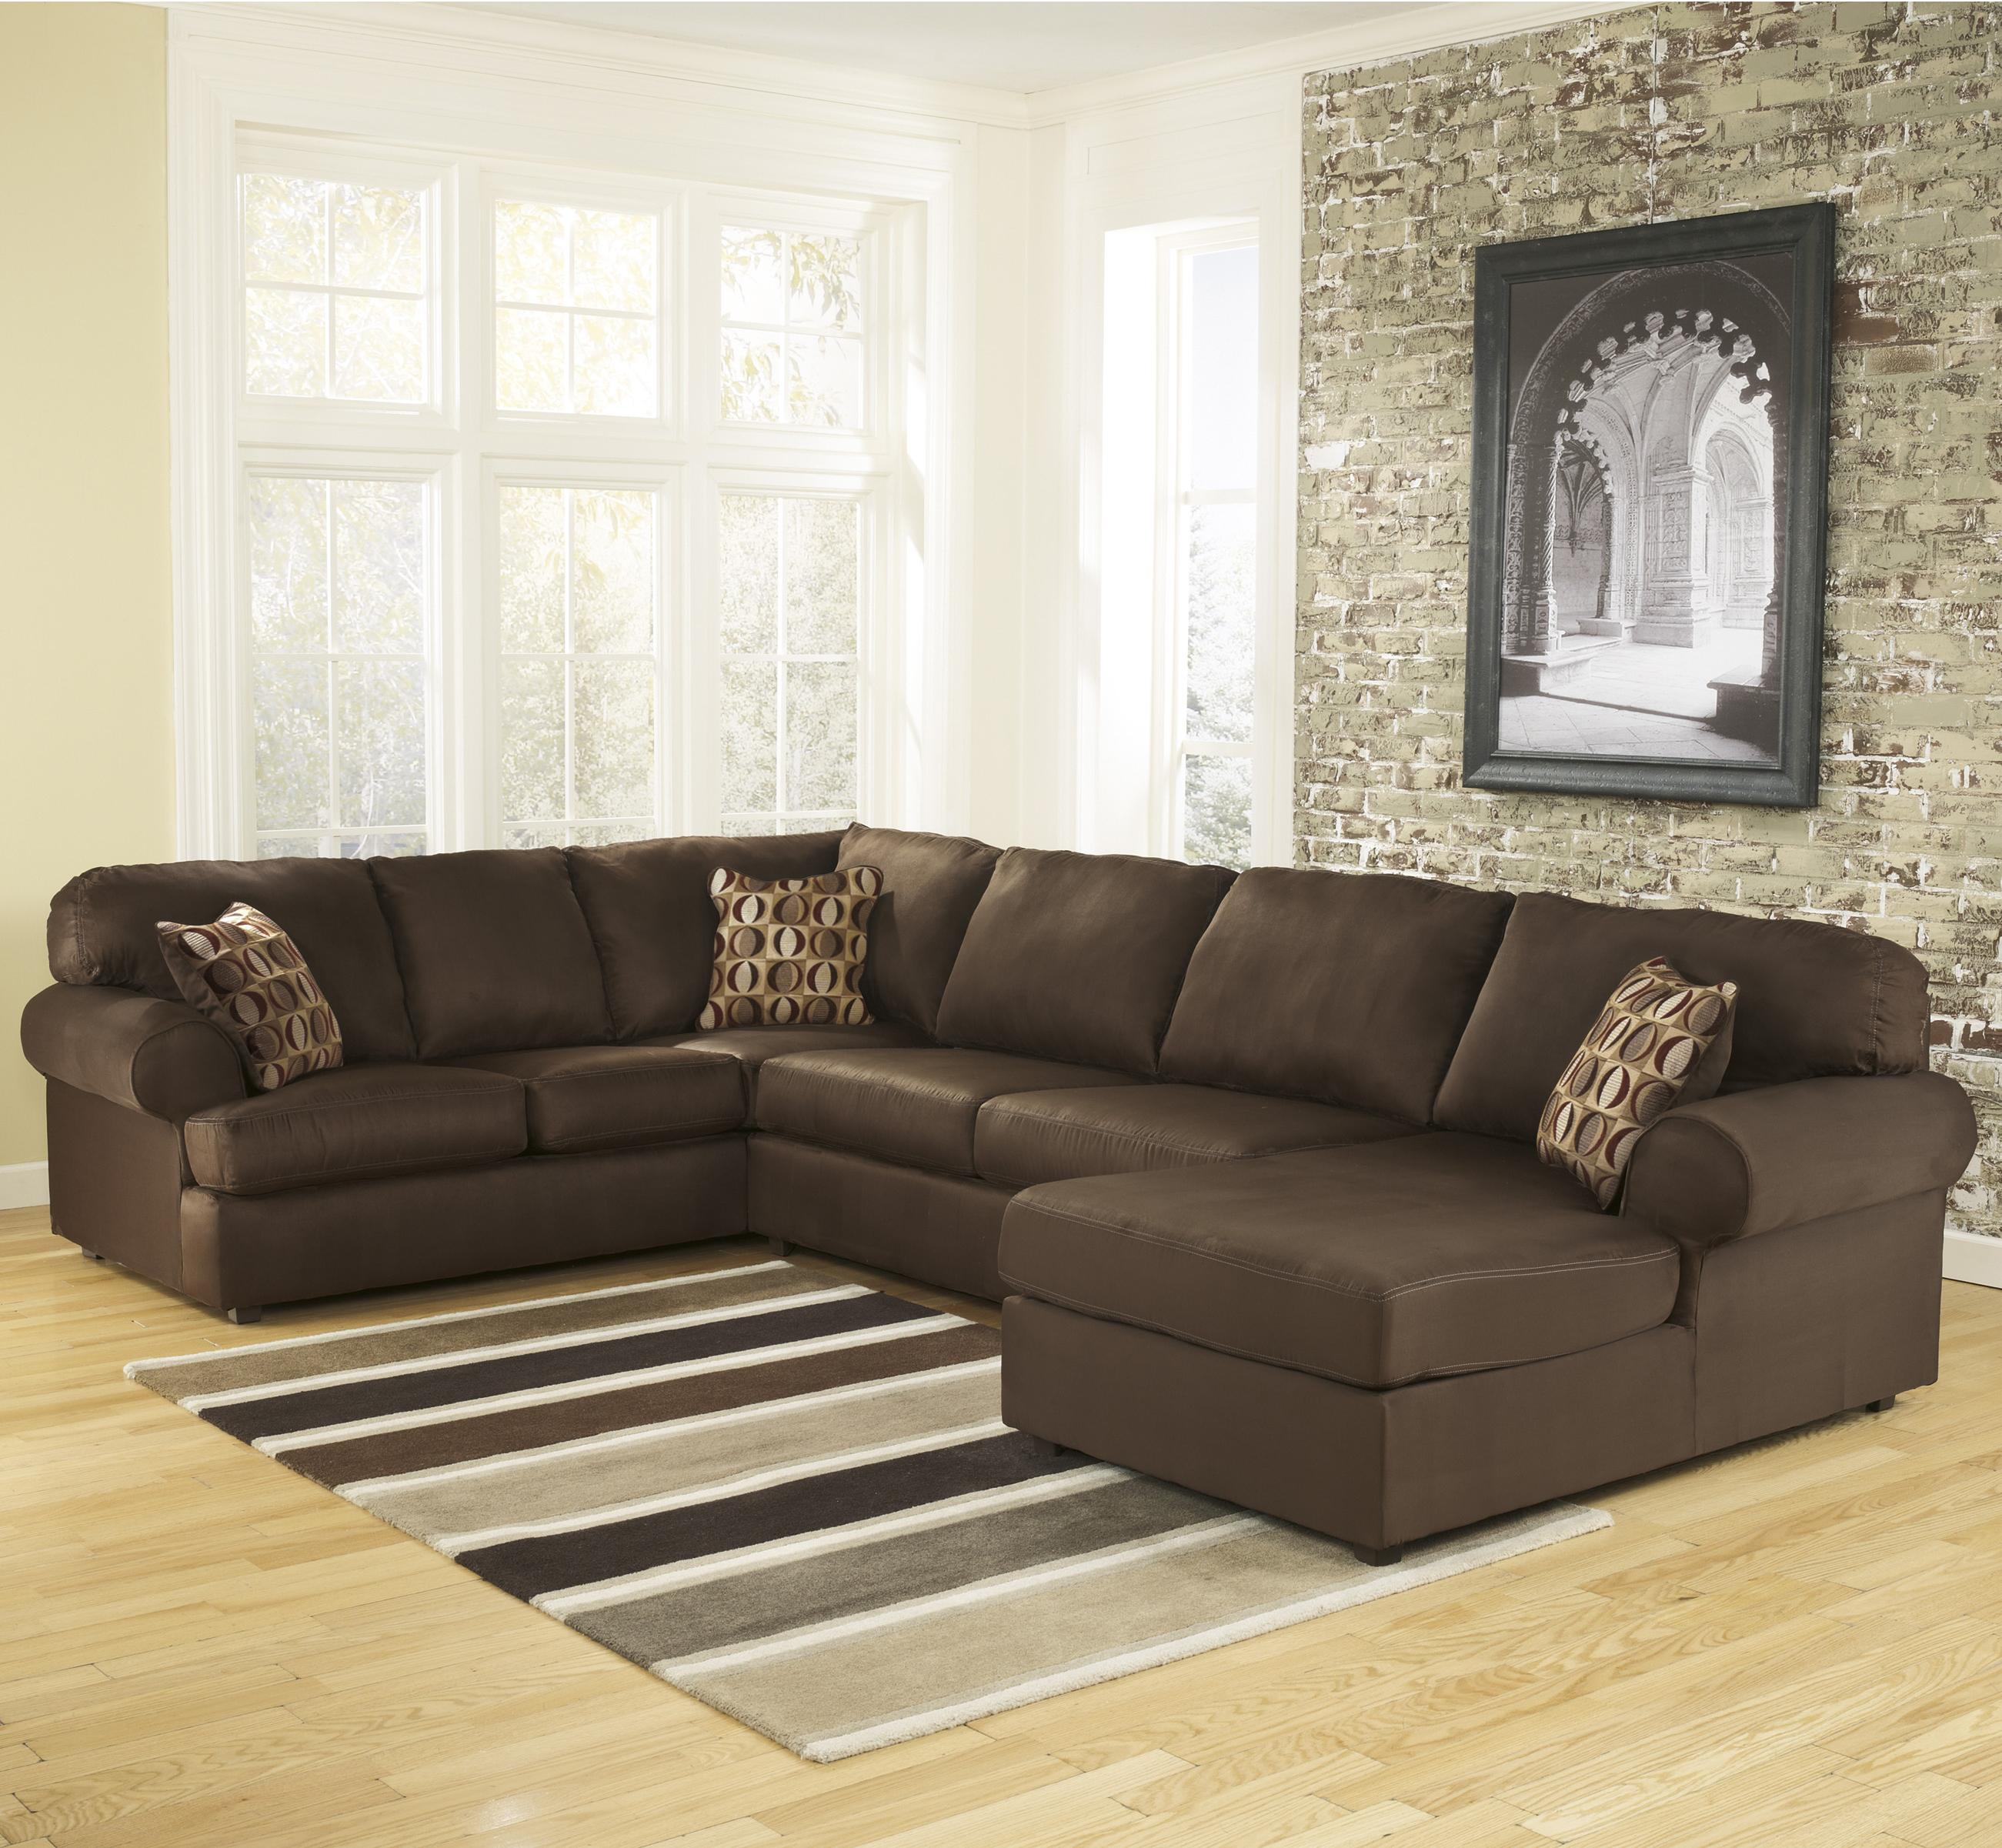 Signature Design by Ashley Cowan - Cafe RAF Corner Sectional - Item Number: 3070417+34+66